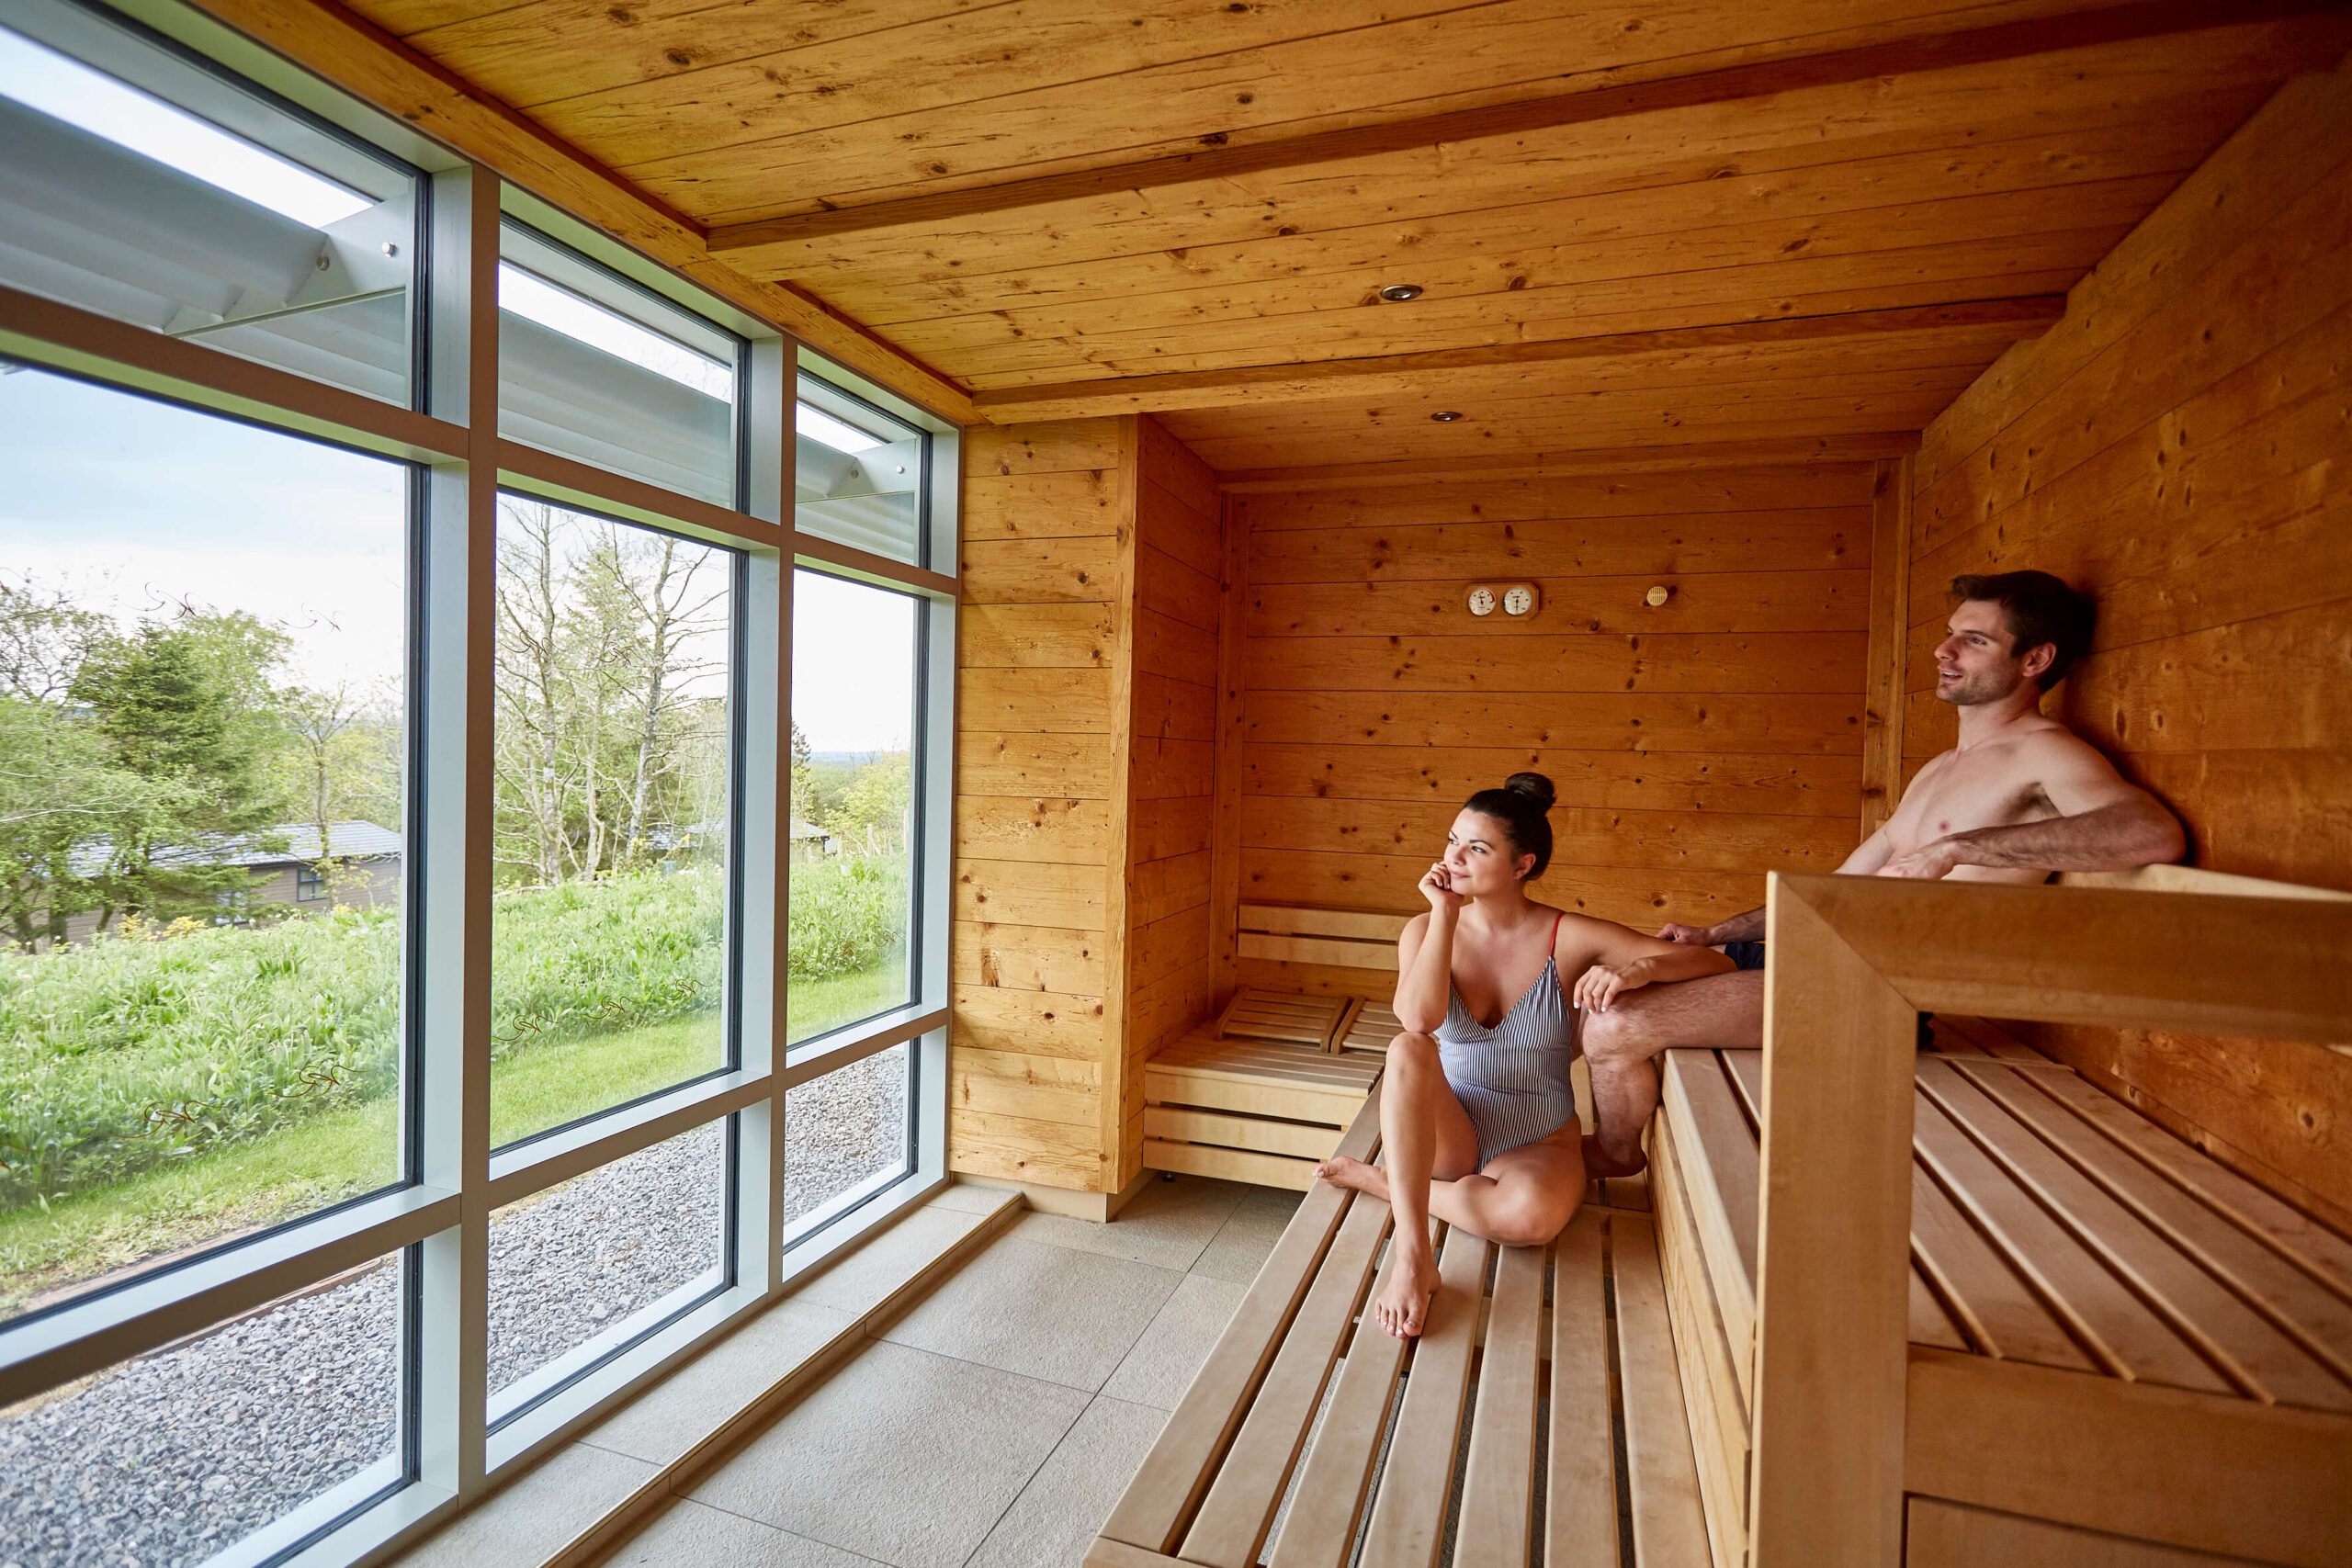 man and woman in sauna enjoying the views from the windows overlooking the lake district